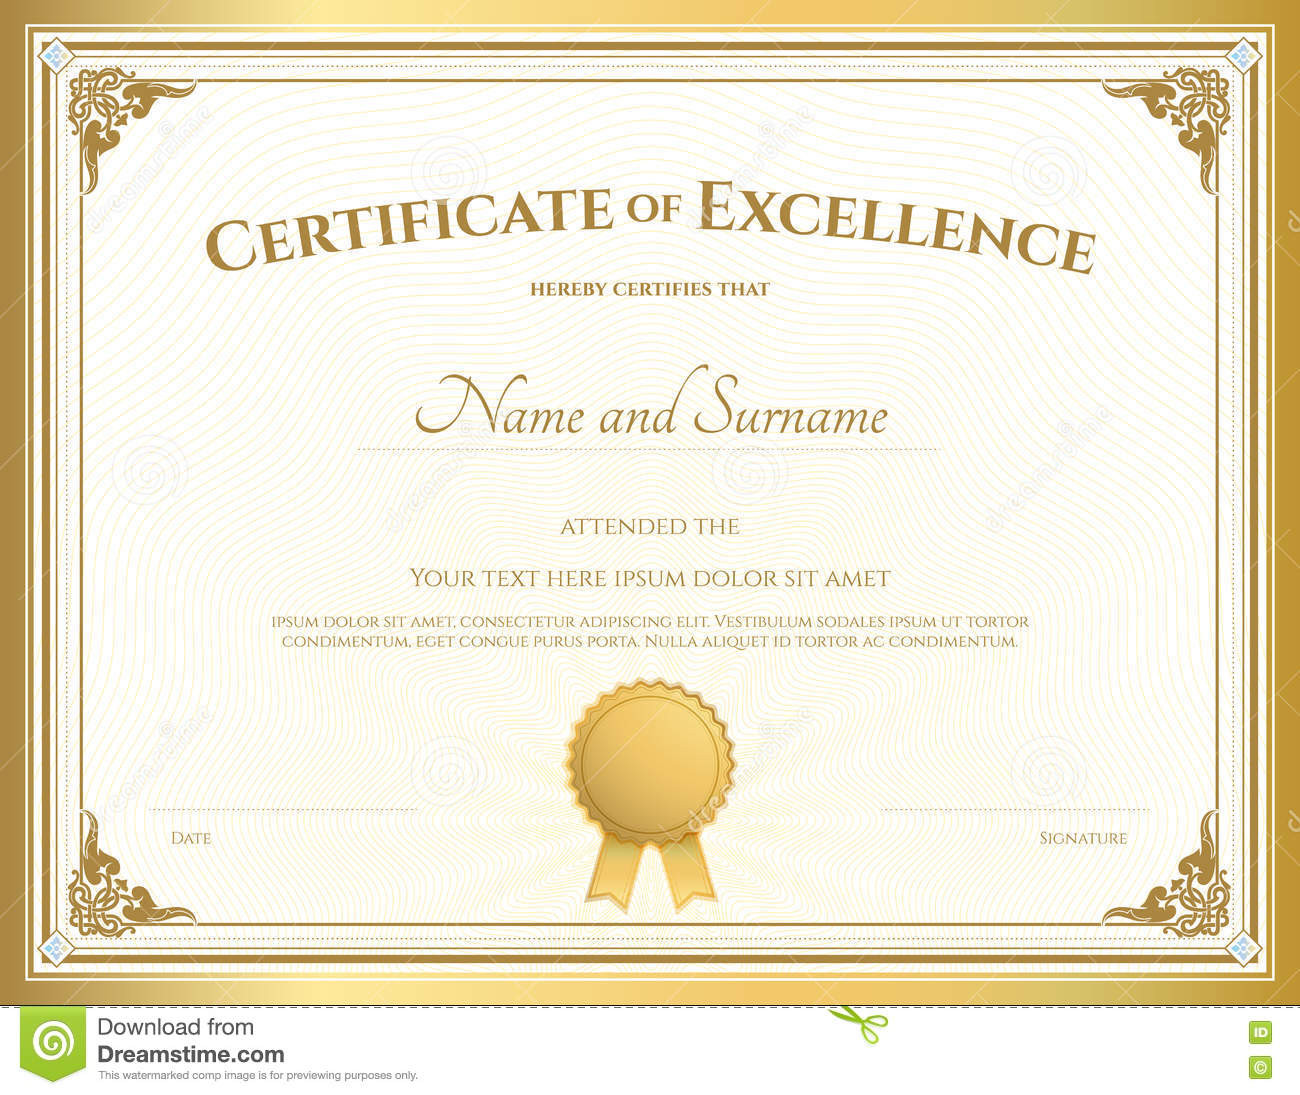 Certificate Of Excellence Template With Gold Border  Certificate Of Donation Template